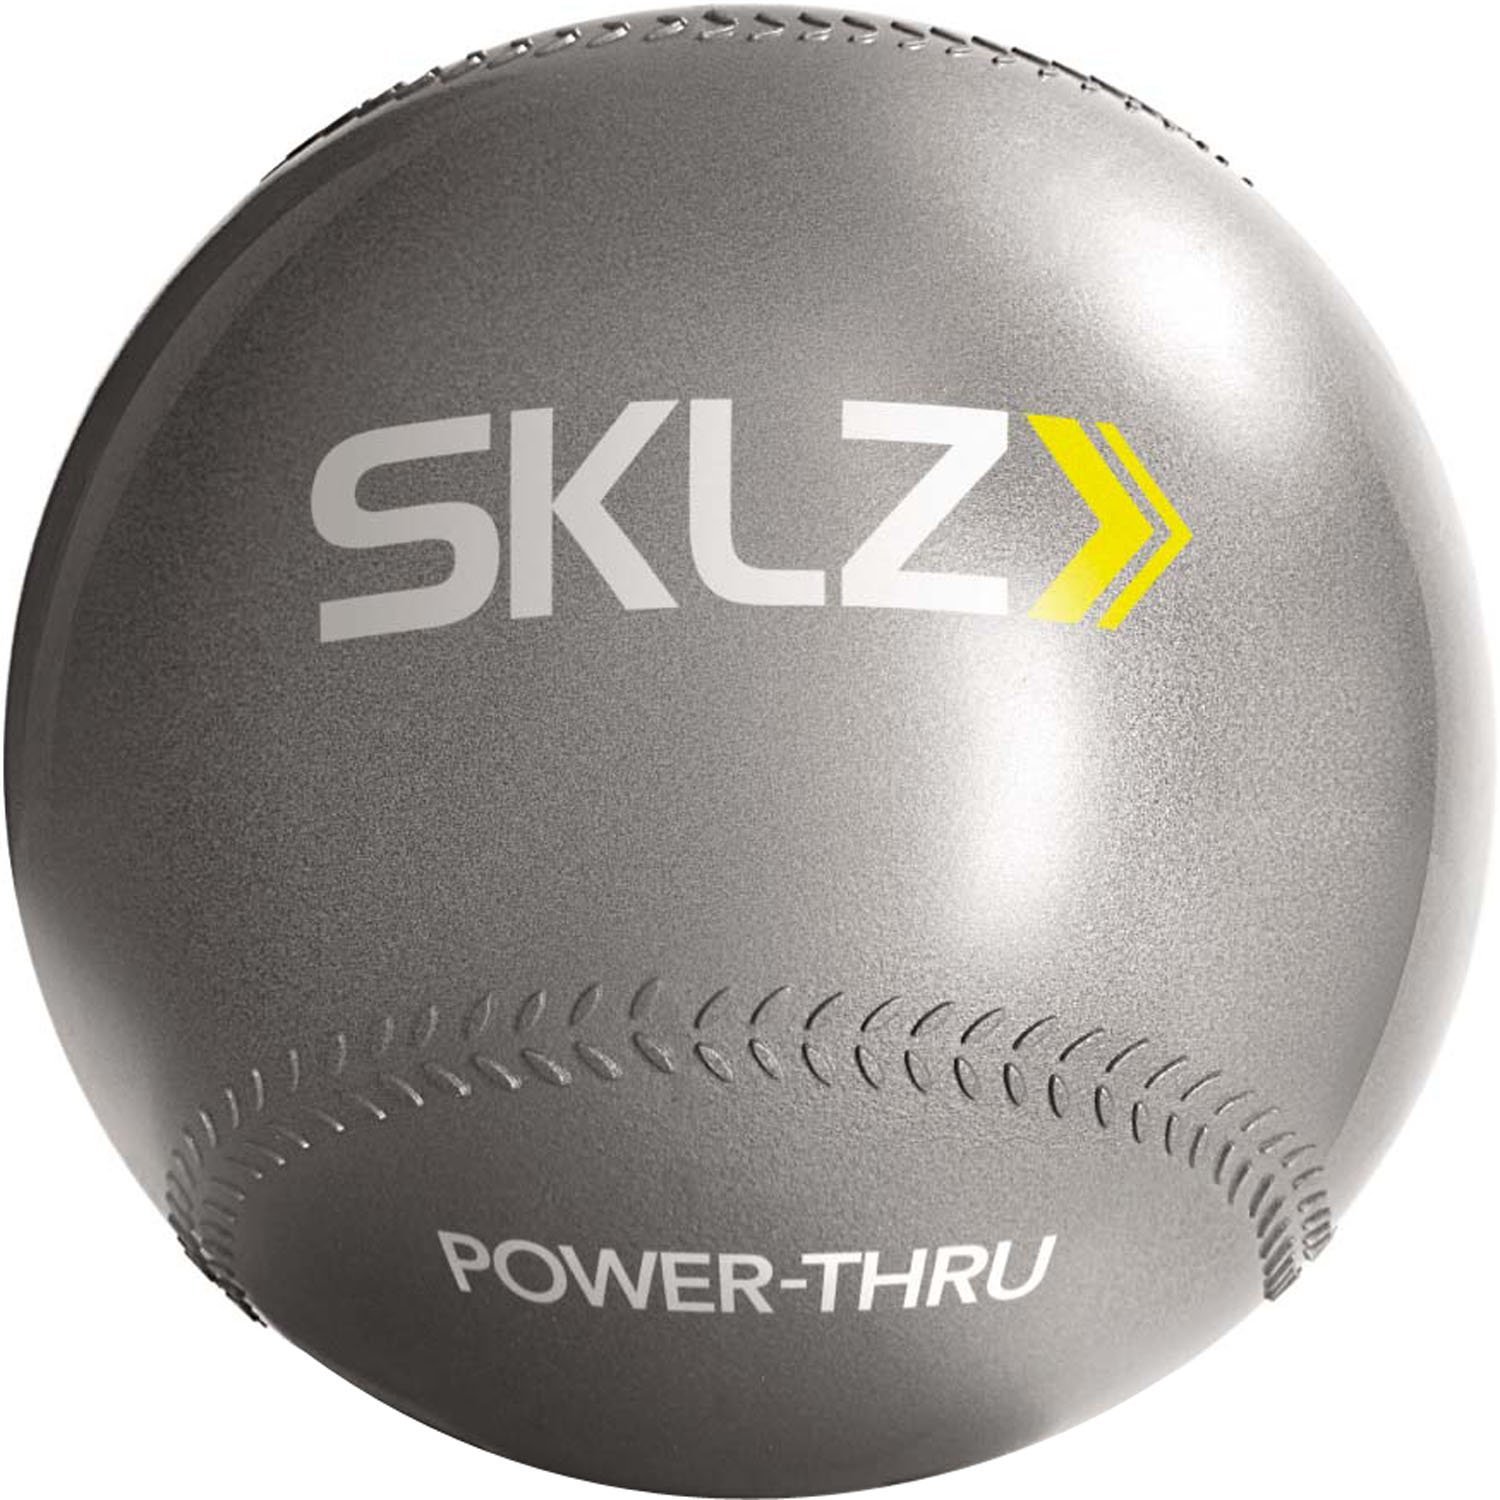 SKLZ power-thru Heavy Ball Hitting Trainer Pro Performance Sports 1196